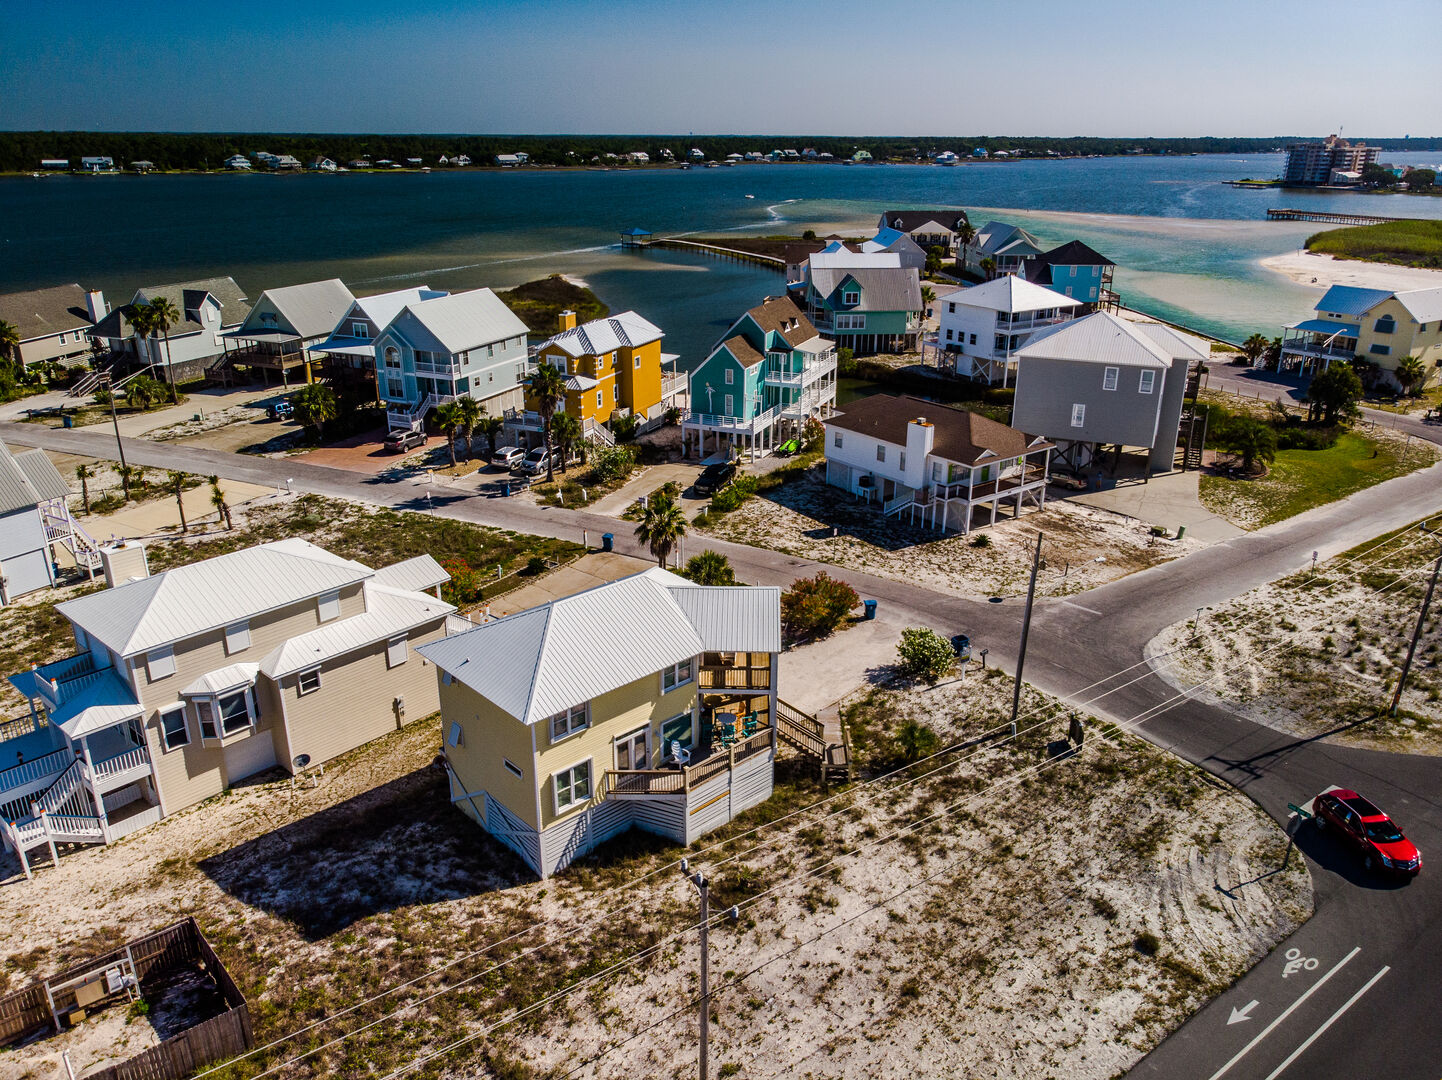 Aerial View of Sailor's Cove, the Neighborhood, and the Lagoon.